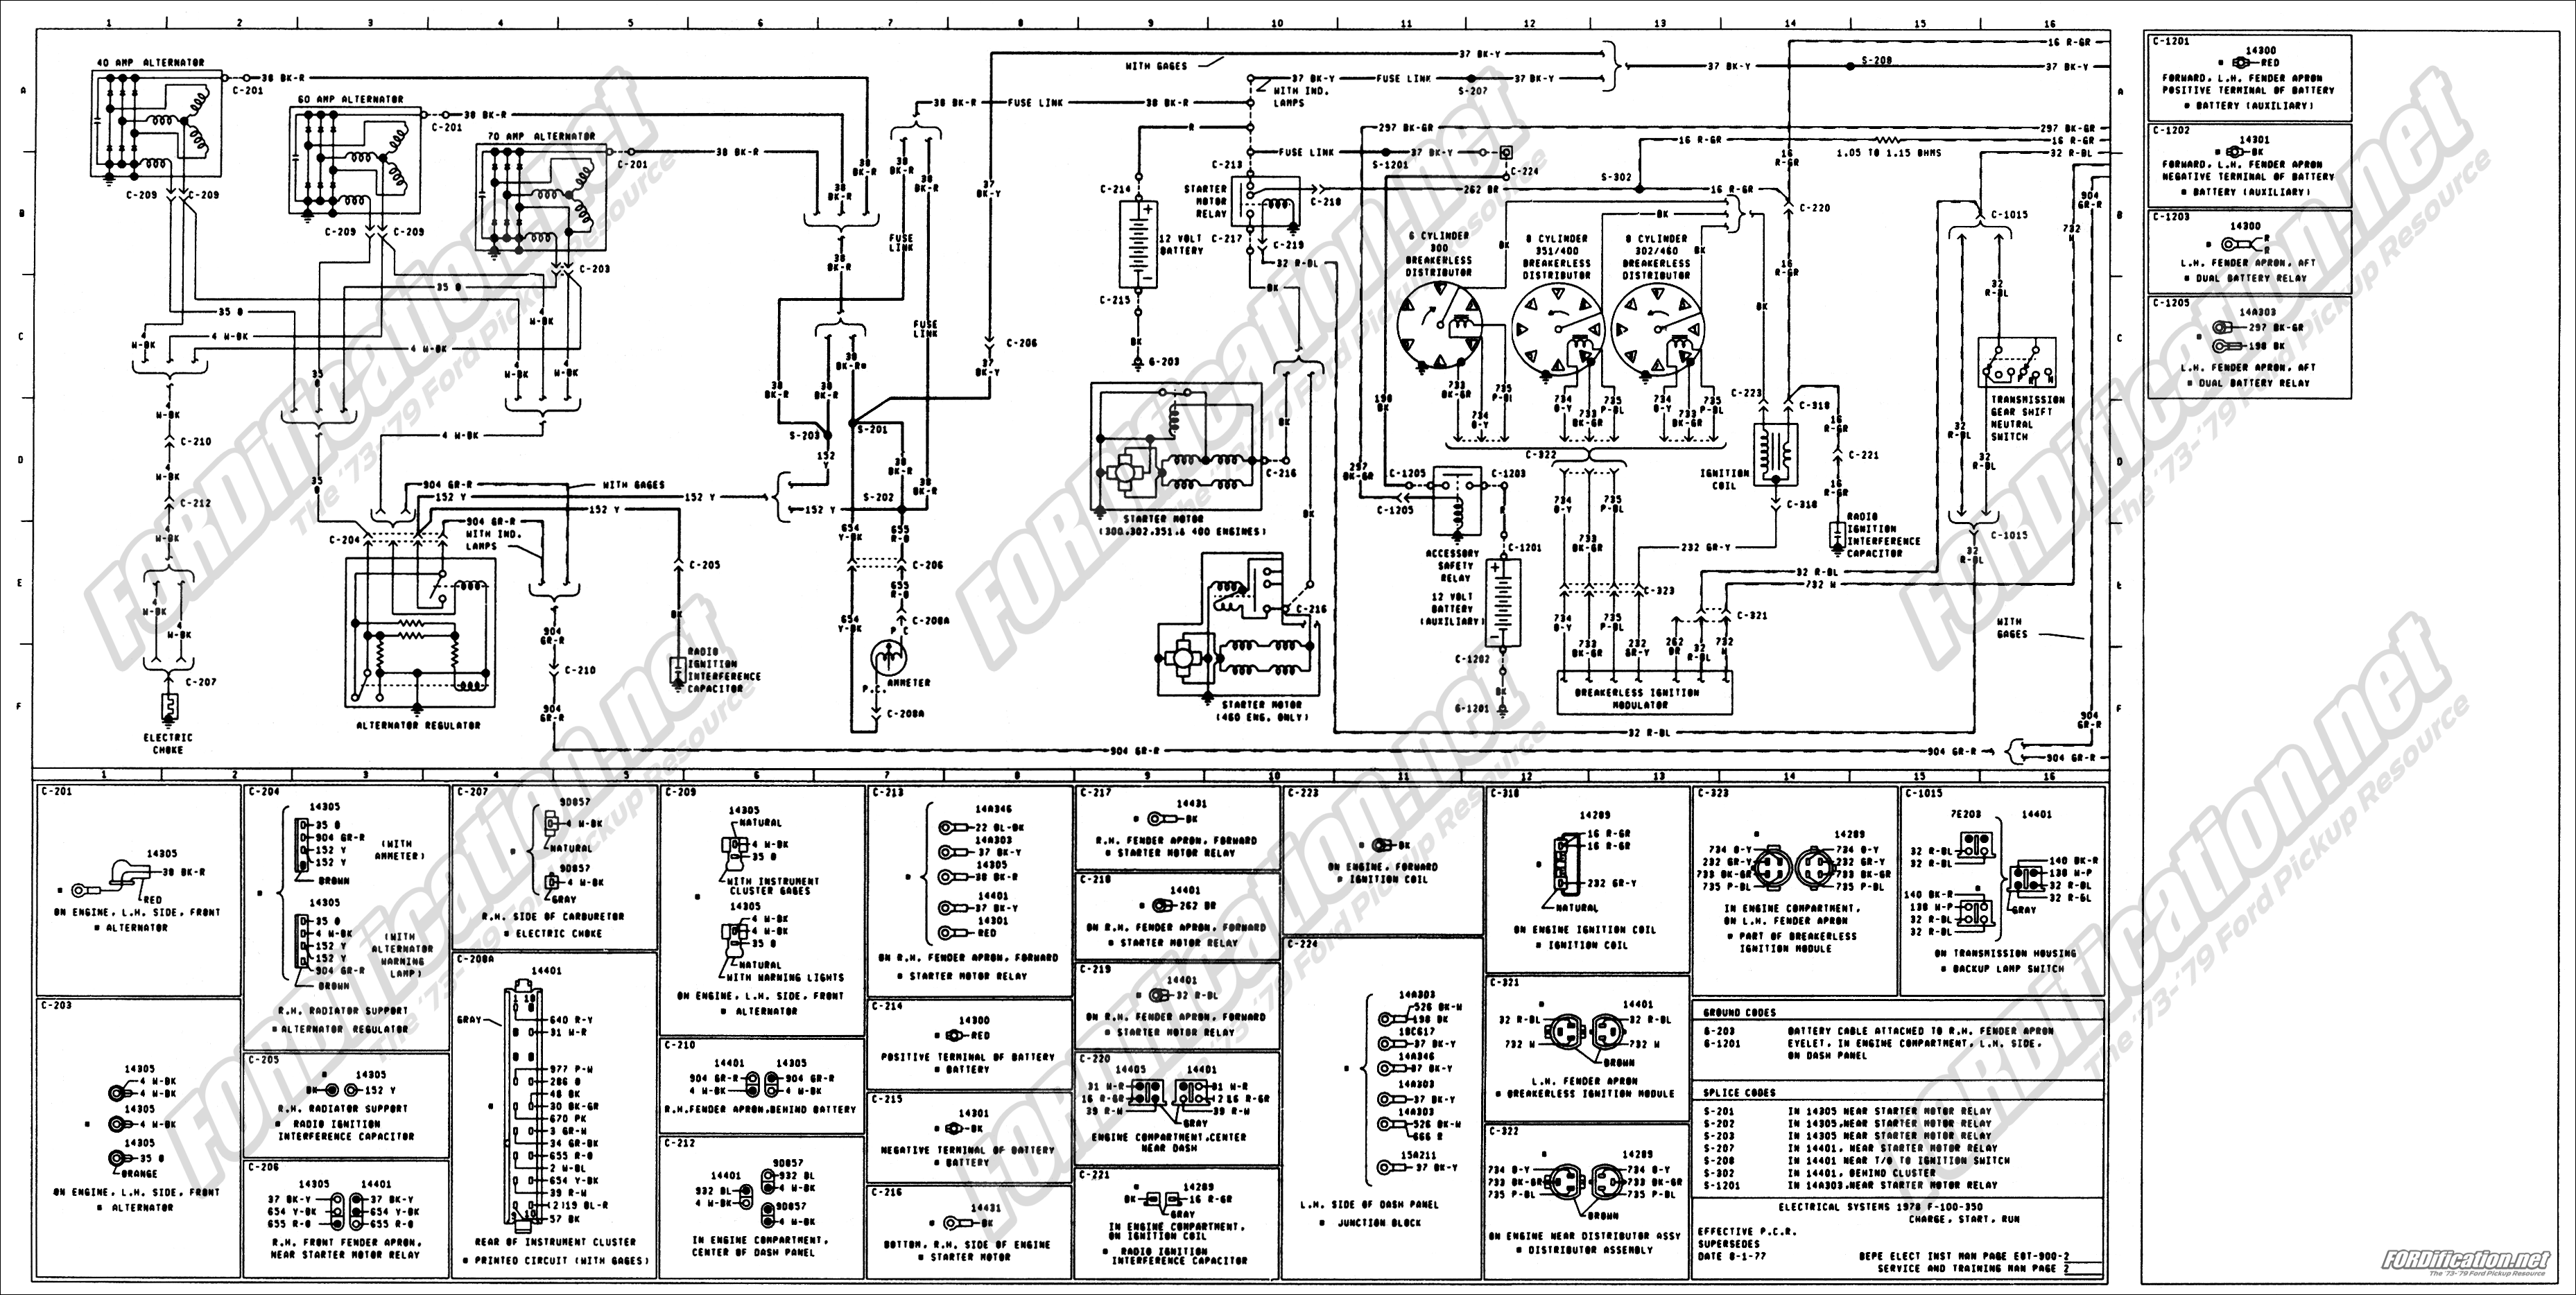 toyota hilux alternator wiring diagram with Wiring Diagram For 1969 Ford F100 on 1984 Toyota Wiring Schematic besides 94specs also Denso Heater Wiring Diagram also Wiring Diagram For 1969 Ford F100 in addition 85 Toyota Pickup Alternator Wiring.